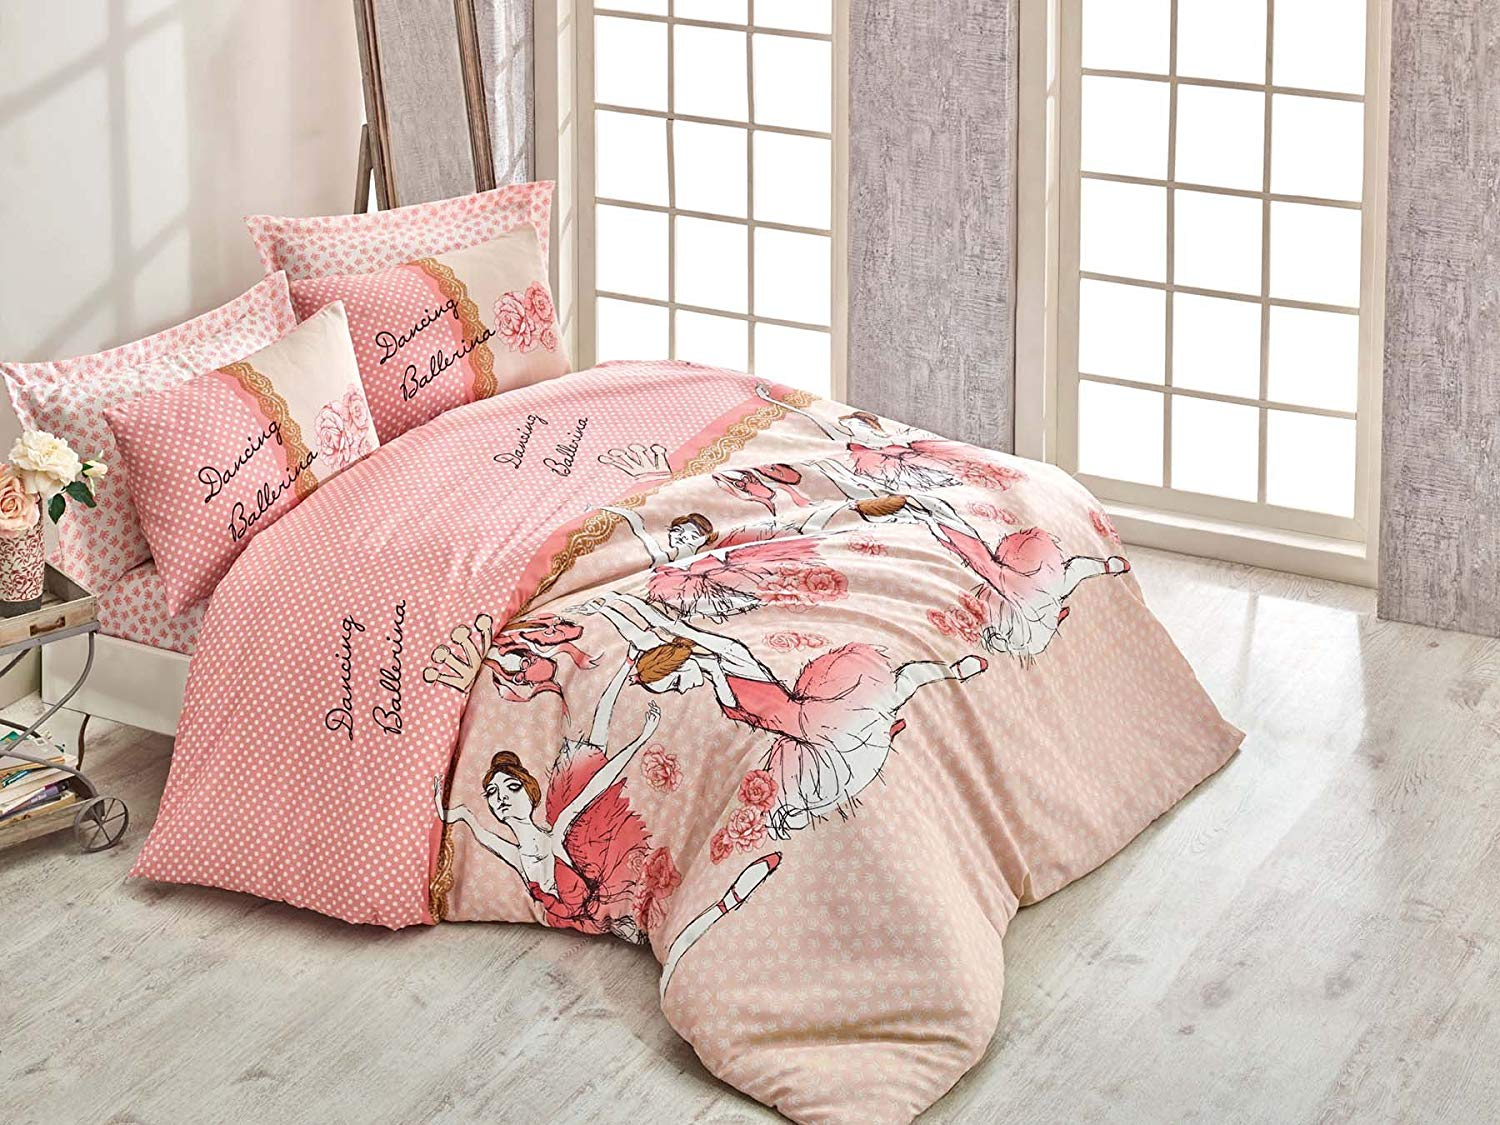 LaModaHome 3 Pcs Luxury Soft Colored Full and Double Bedroom Bedding Ranforce 65% Cotton Double Quilt Duvet Cover Set Dancing Ballerina Woman Flower Pink Background Rose